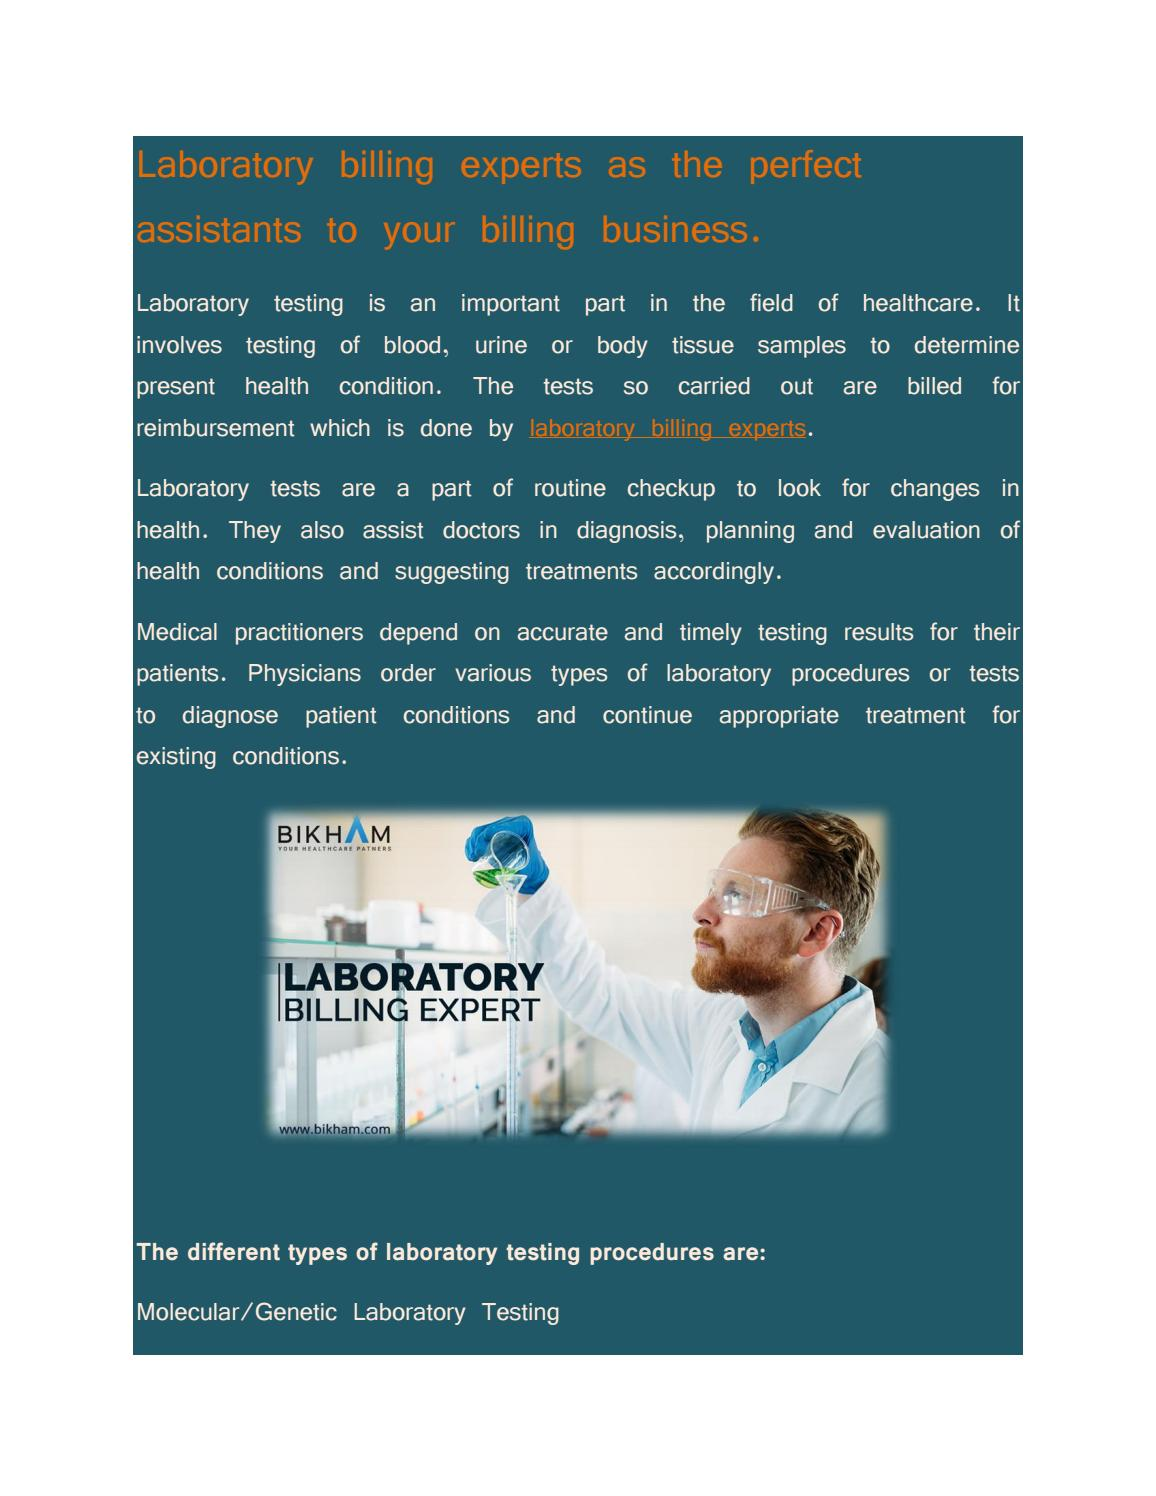 LABORATORY BILLING EXPERTS AS THE PERFECT ASSISTANTS TO YOUR